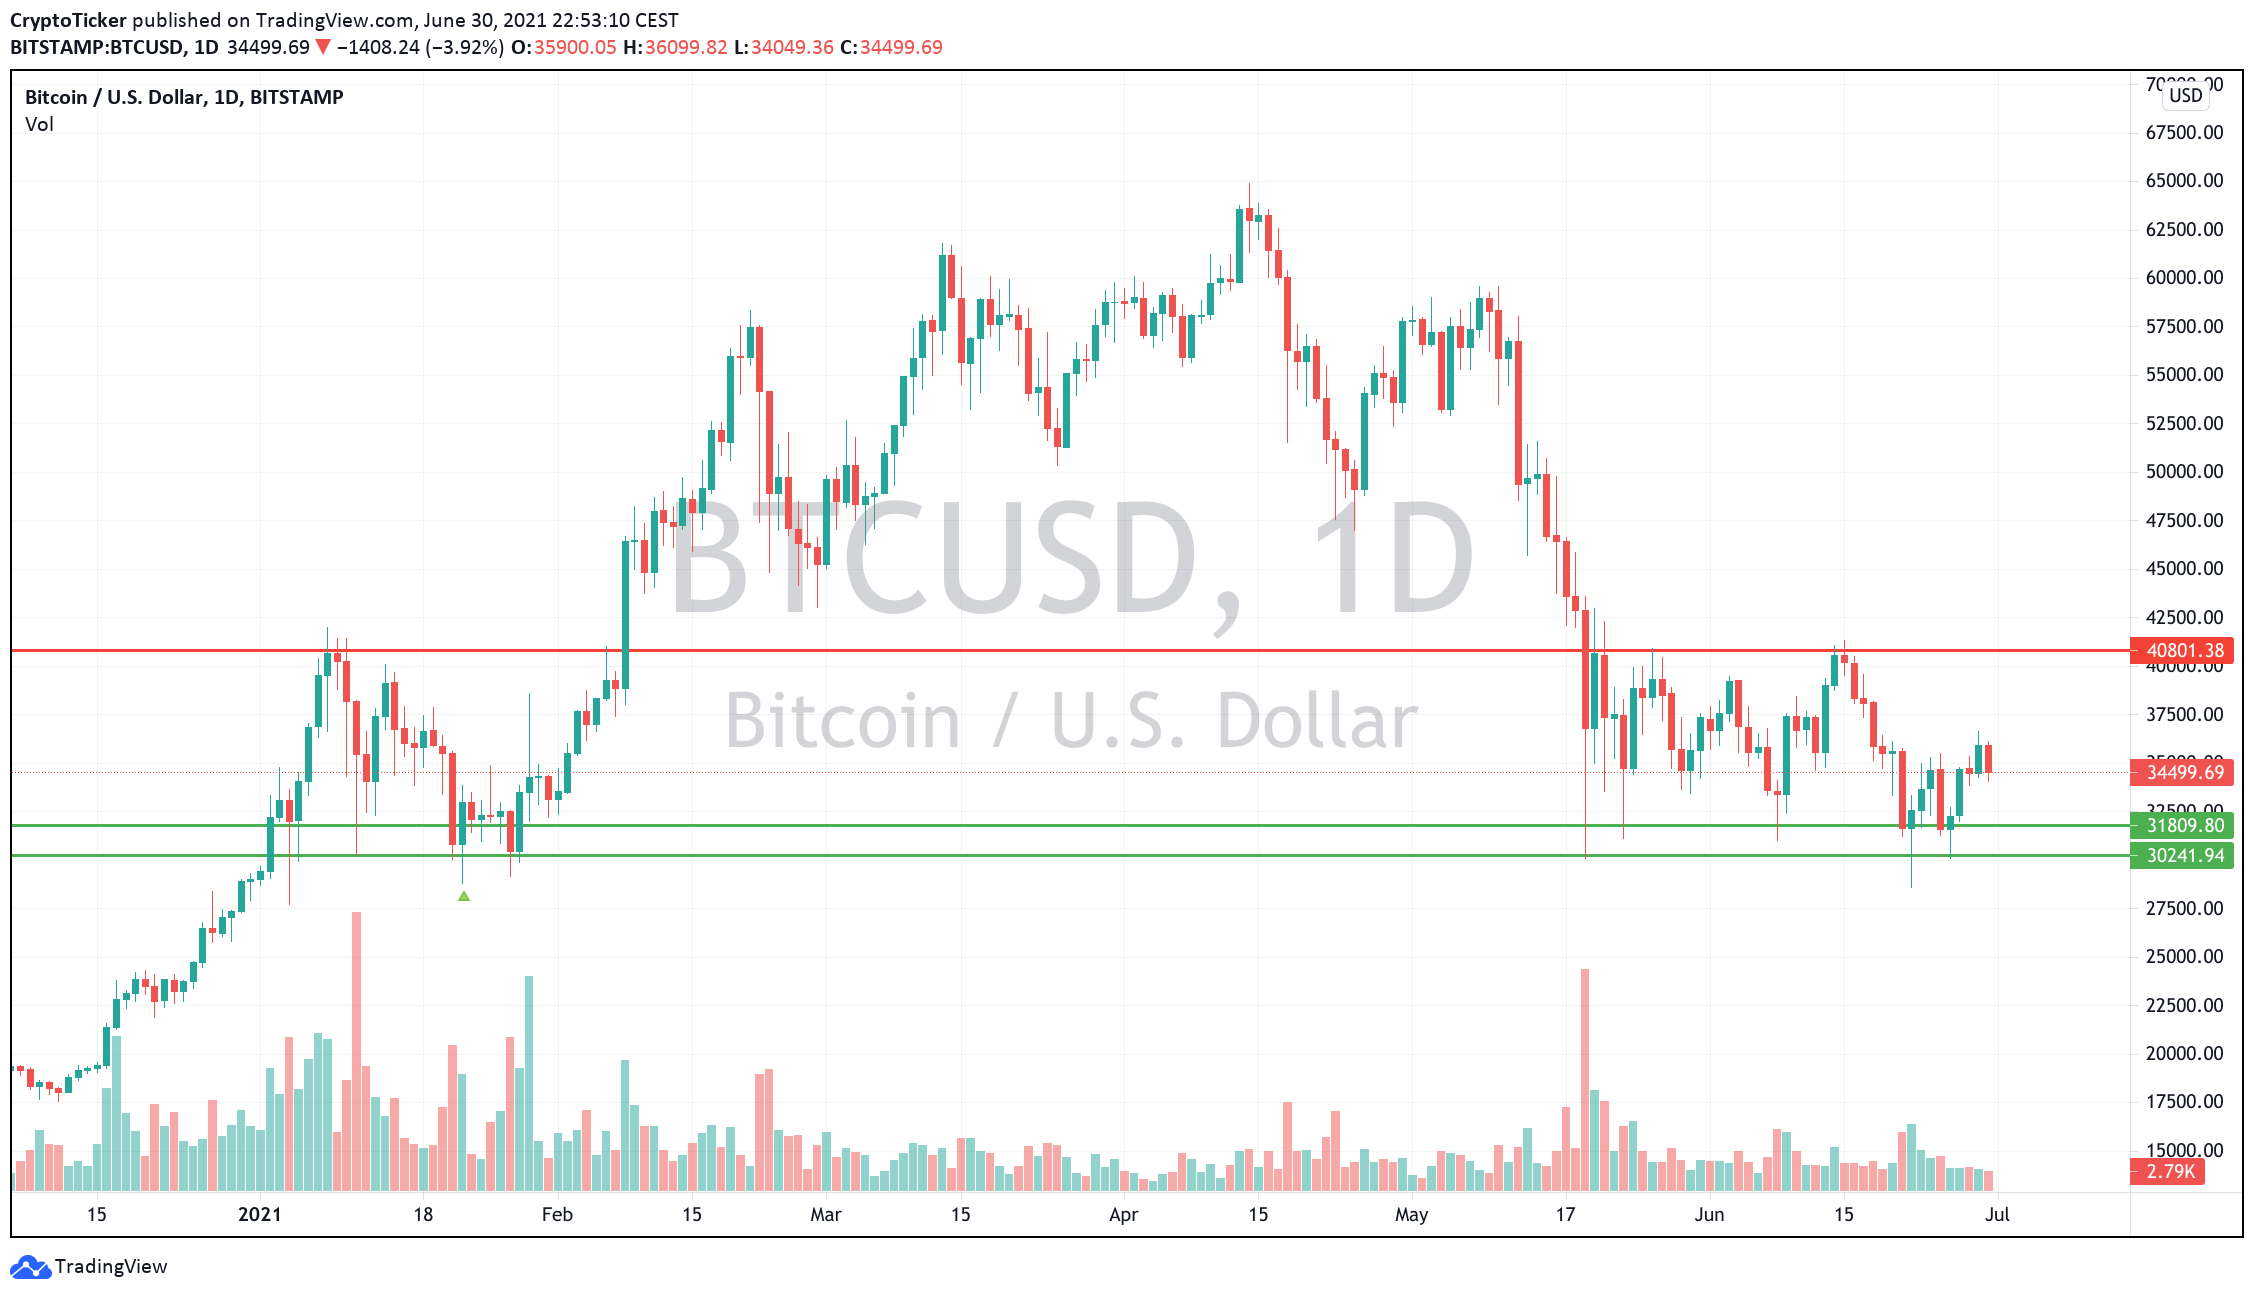 BTC/USD 1-day chart showing 2 strong support & resistance areas for Bitcoin